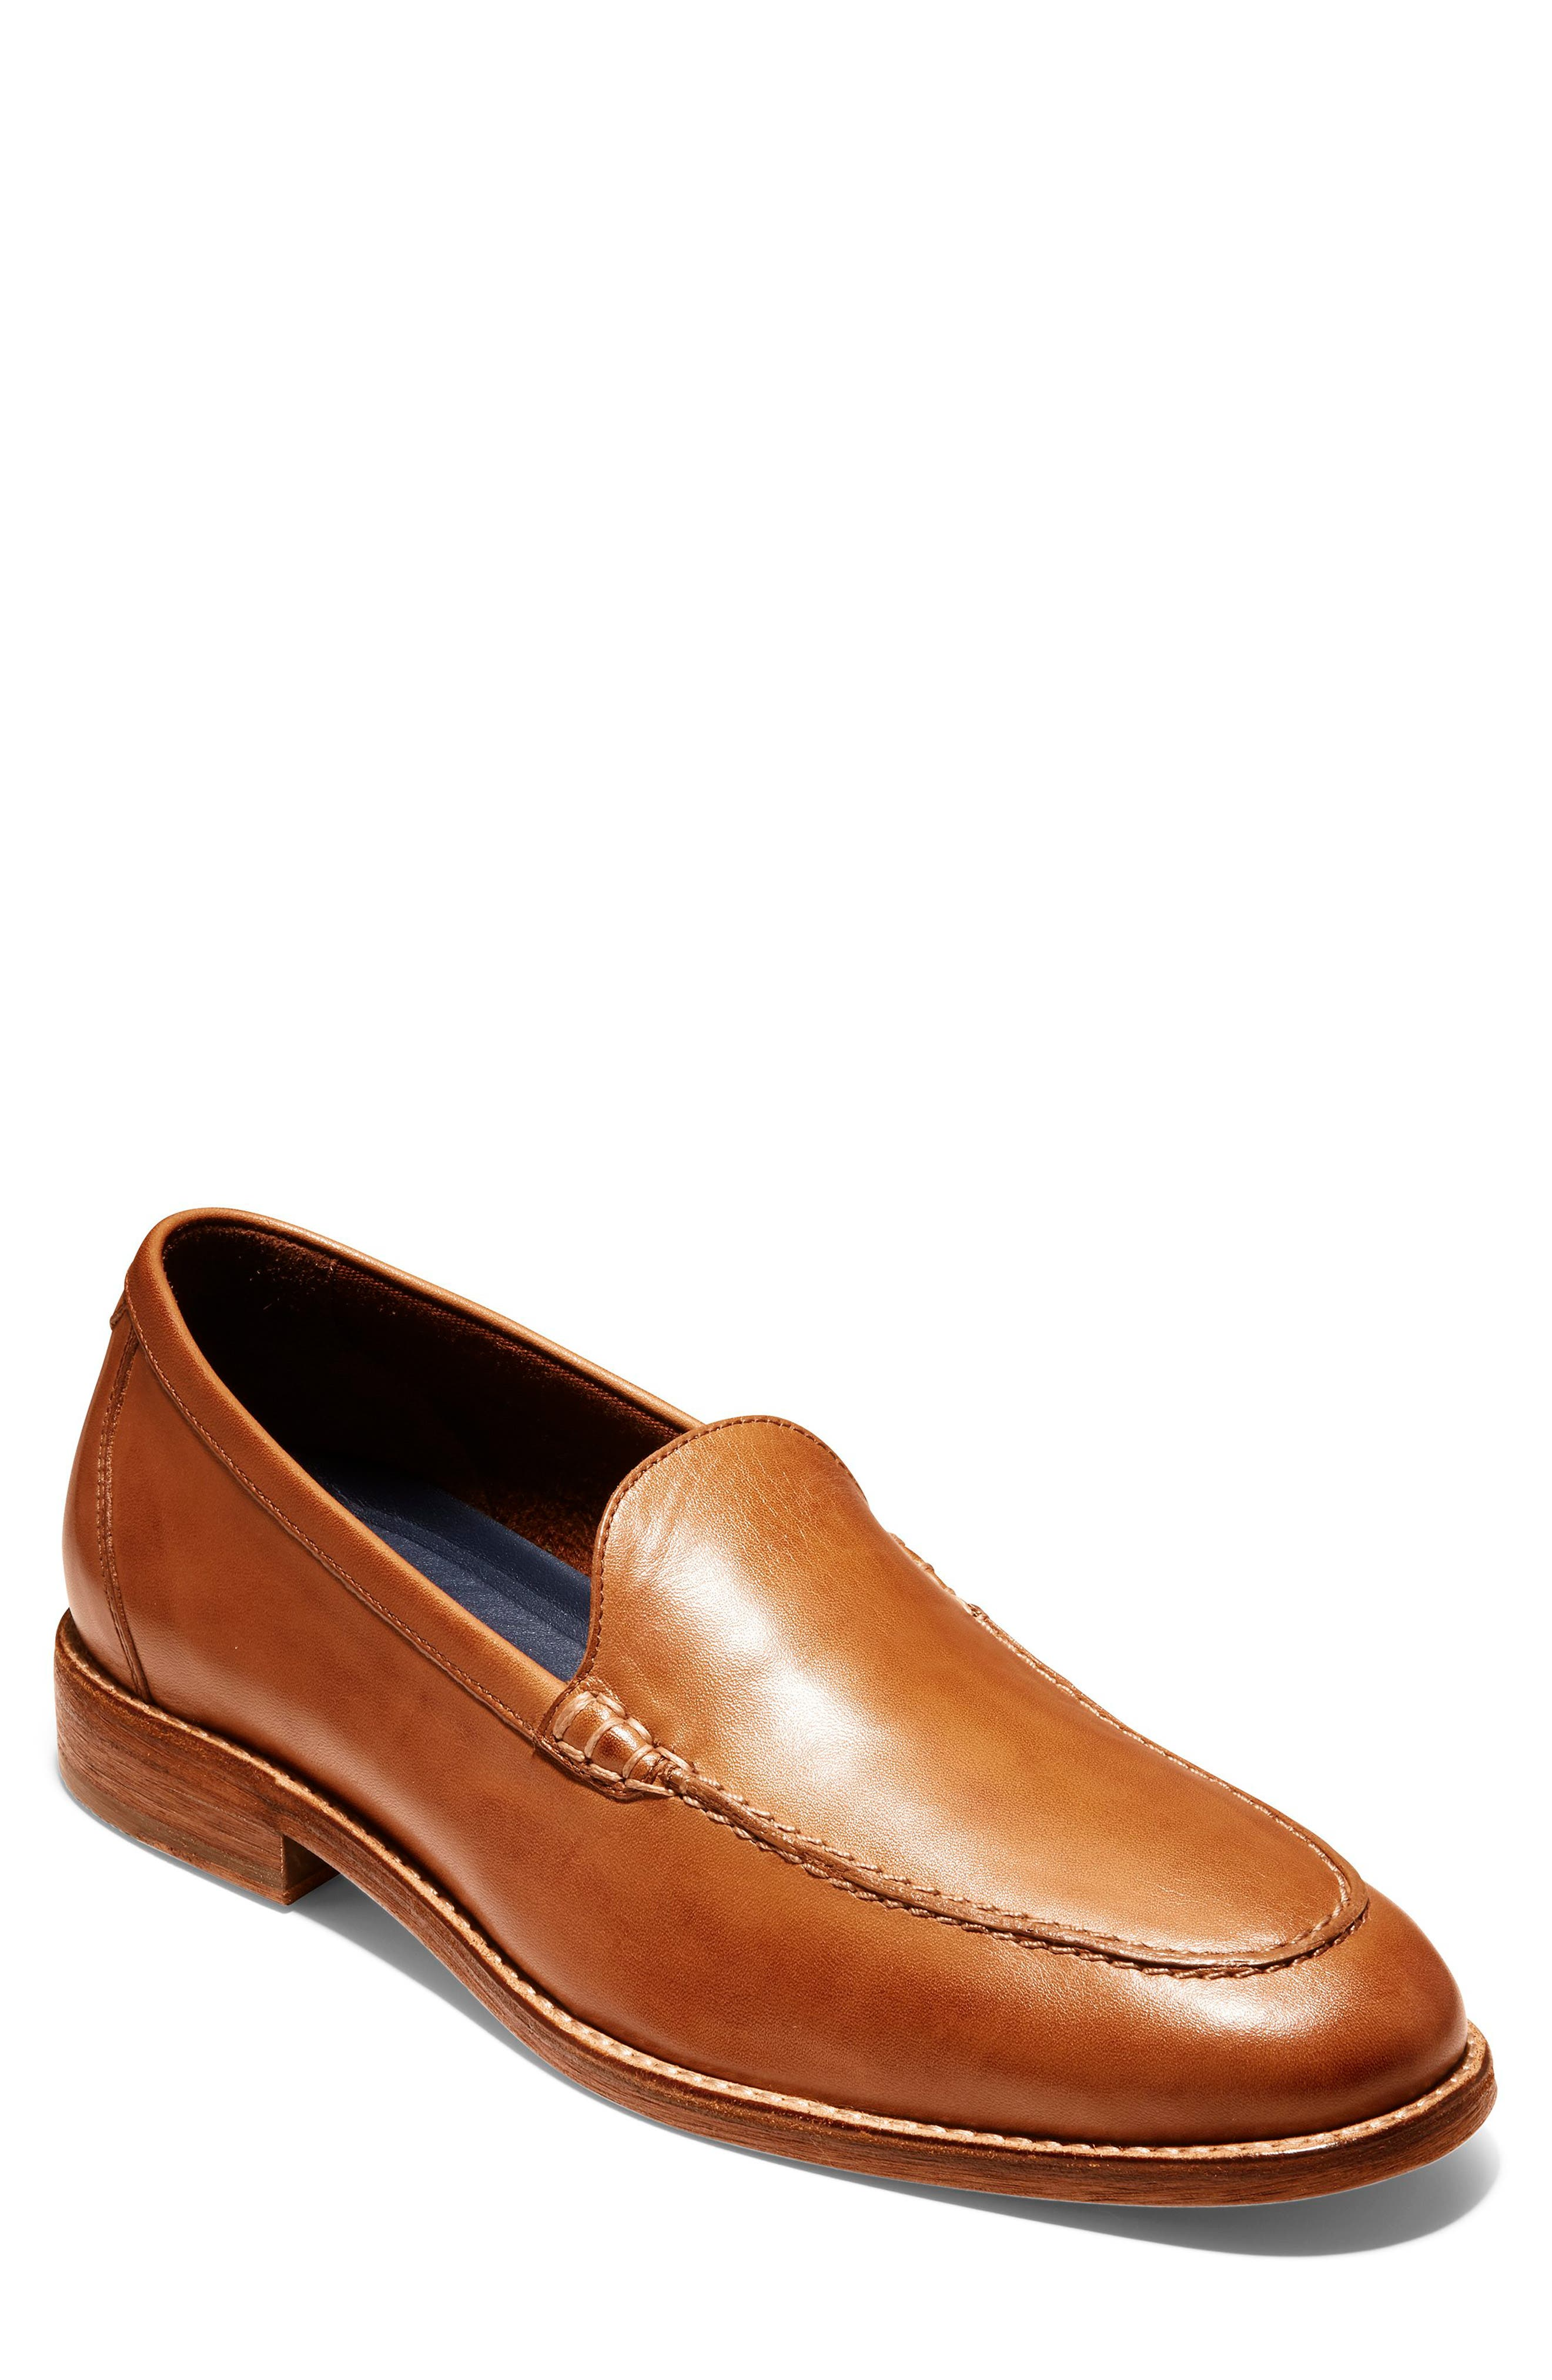 COLE HAAN Feathercraft Grand Venetian Loafer, Main, color, BRITISH TAN LEATHER